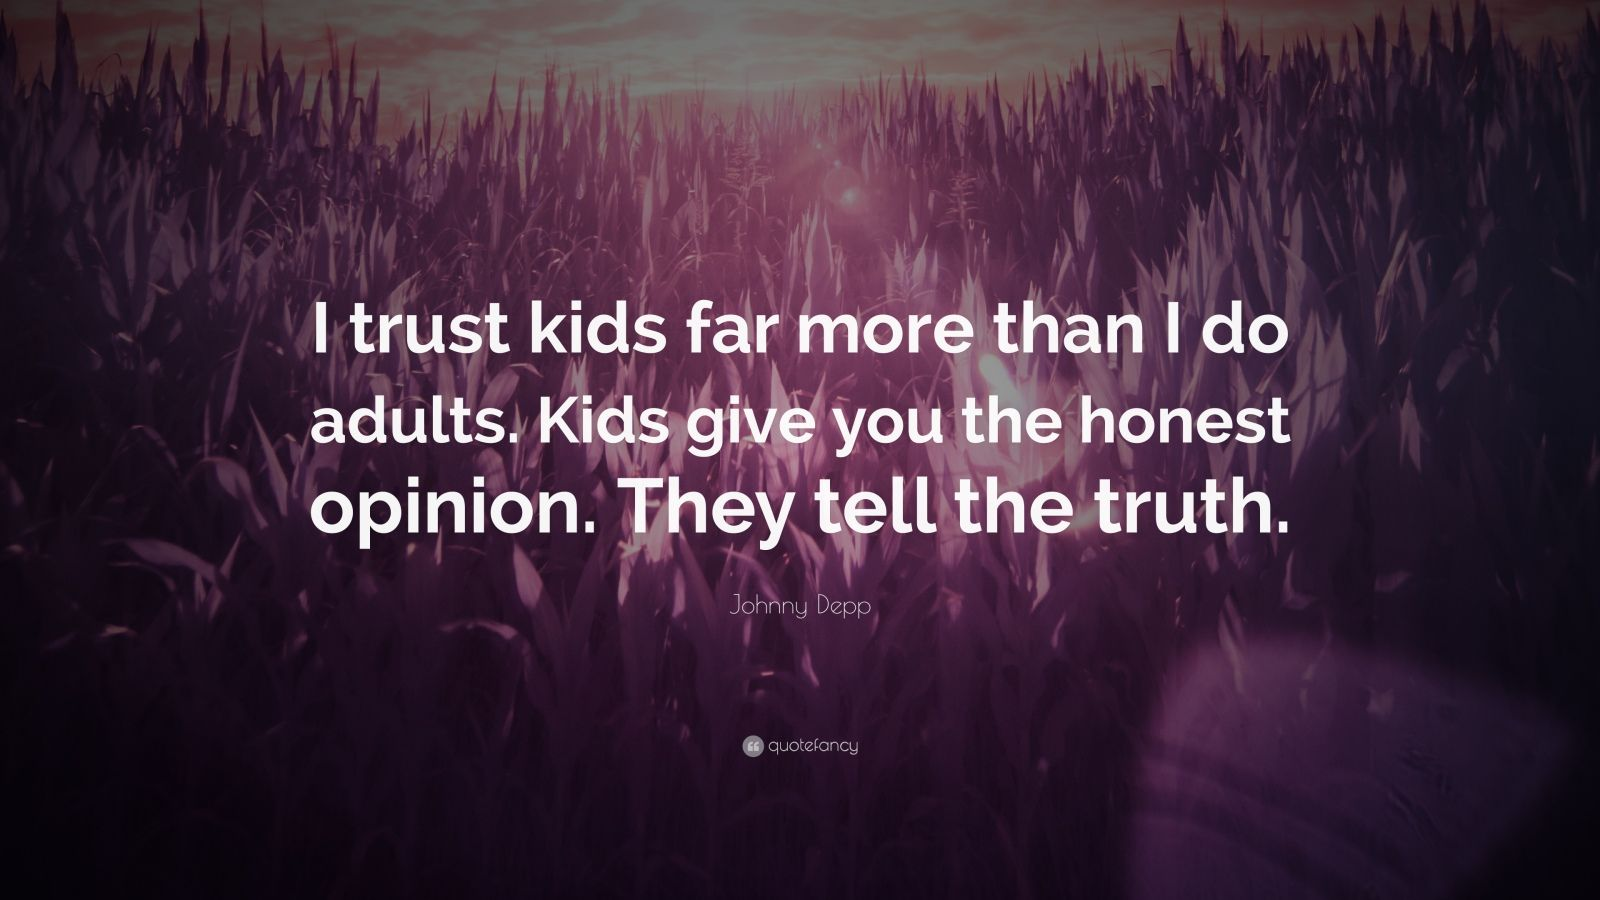 """Johnny Depp Quote: """"I trust kids far more than I do adults. Kids give you the honest opinion. They tell the truth."""""""